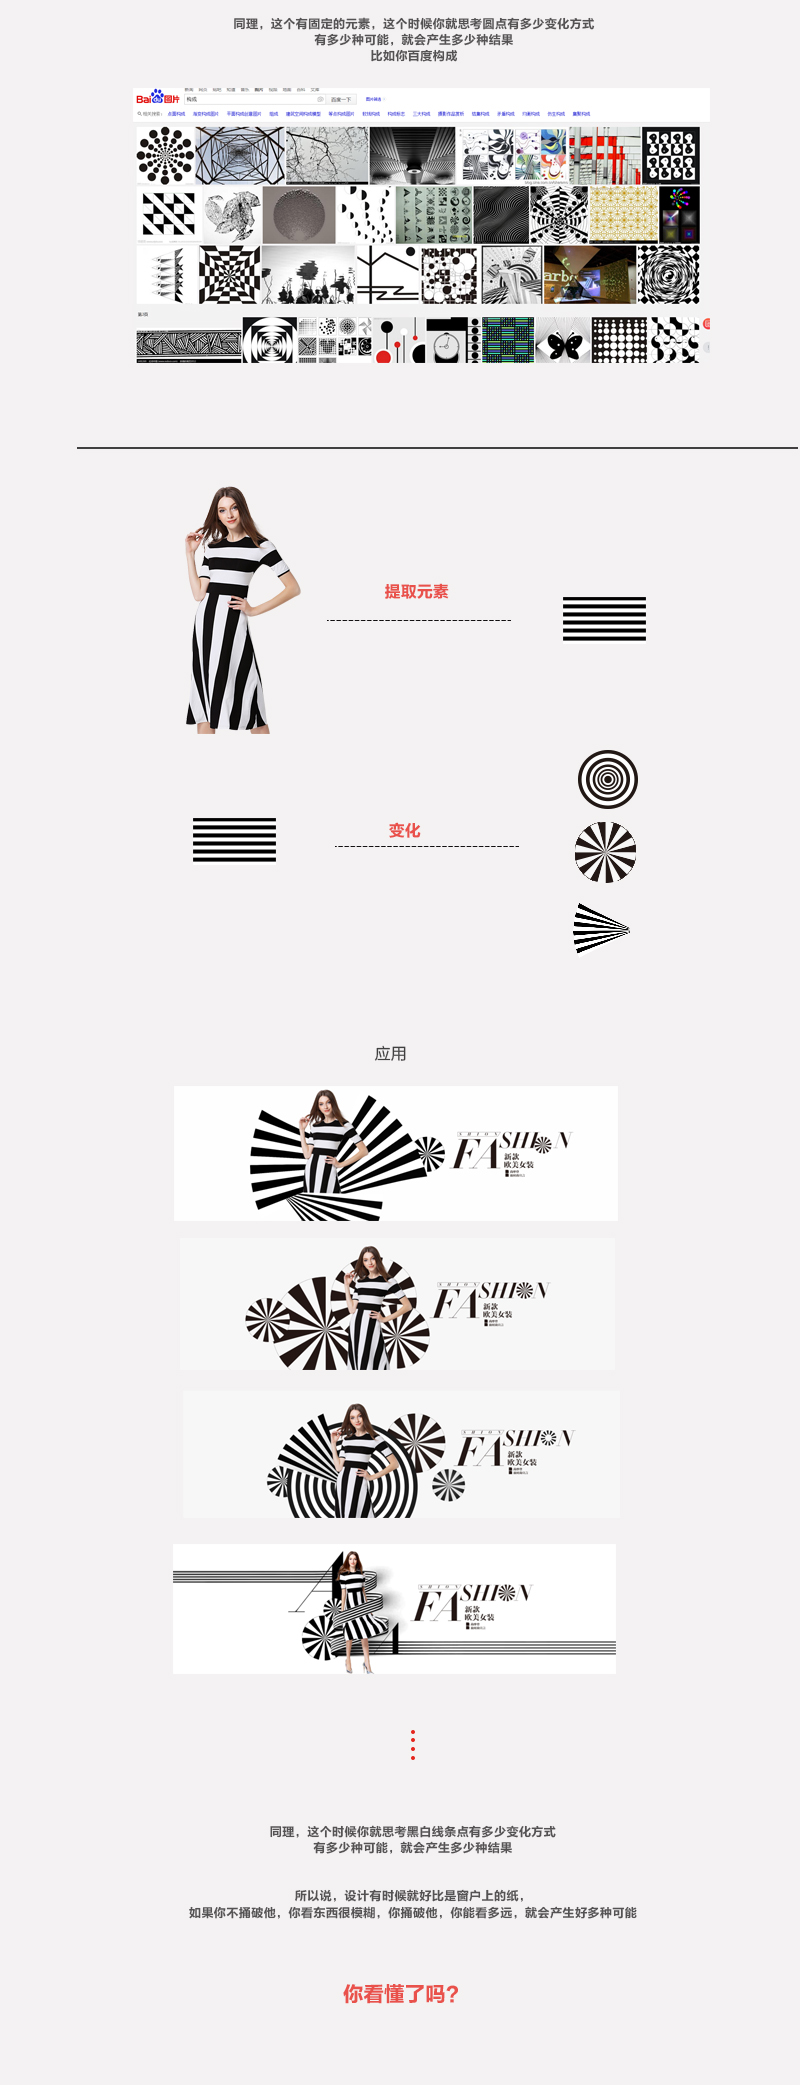 layout-design-main-elements_04